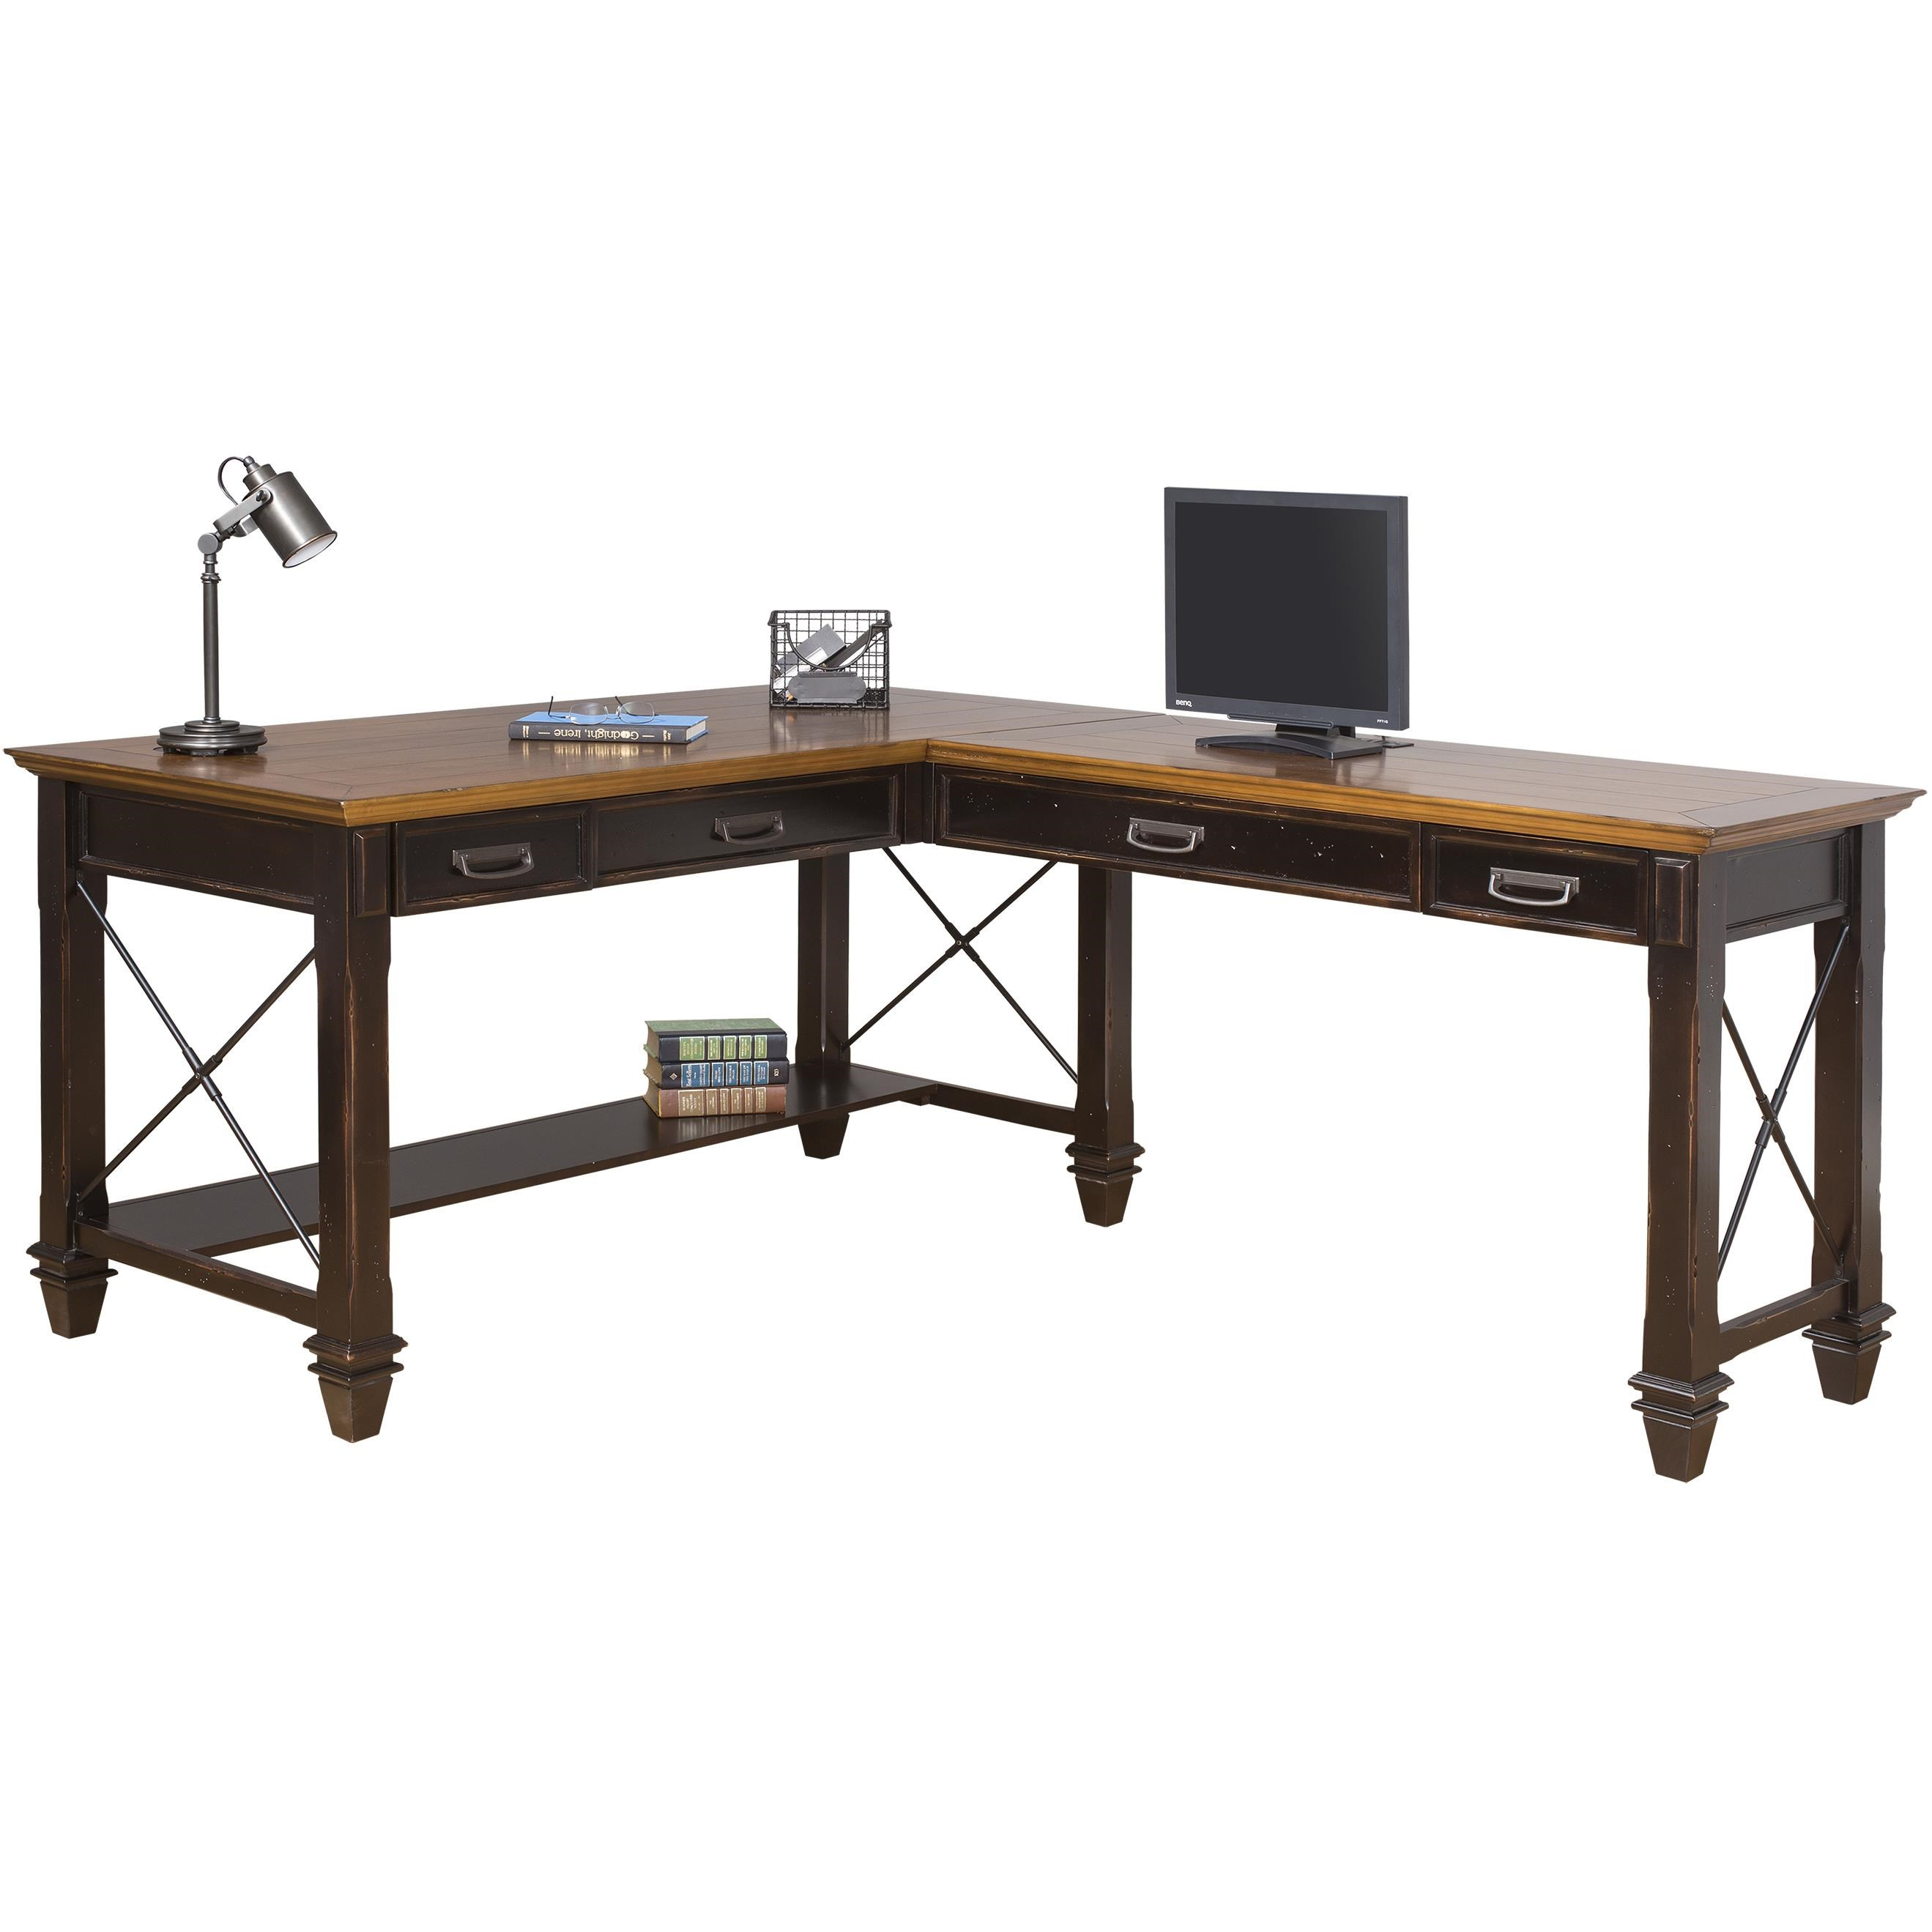 Hartford Right Hand Facing Open L Shaped Desk With 4 Drawers And Shelf By  Kathy Ireland Home By Martin